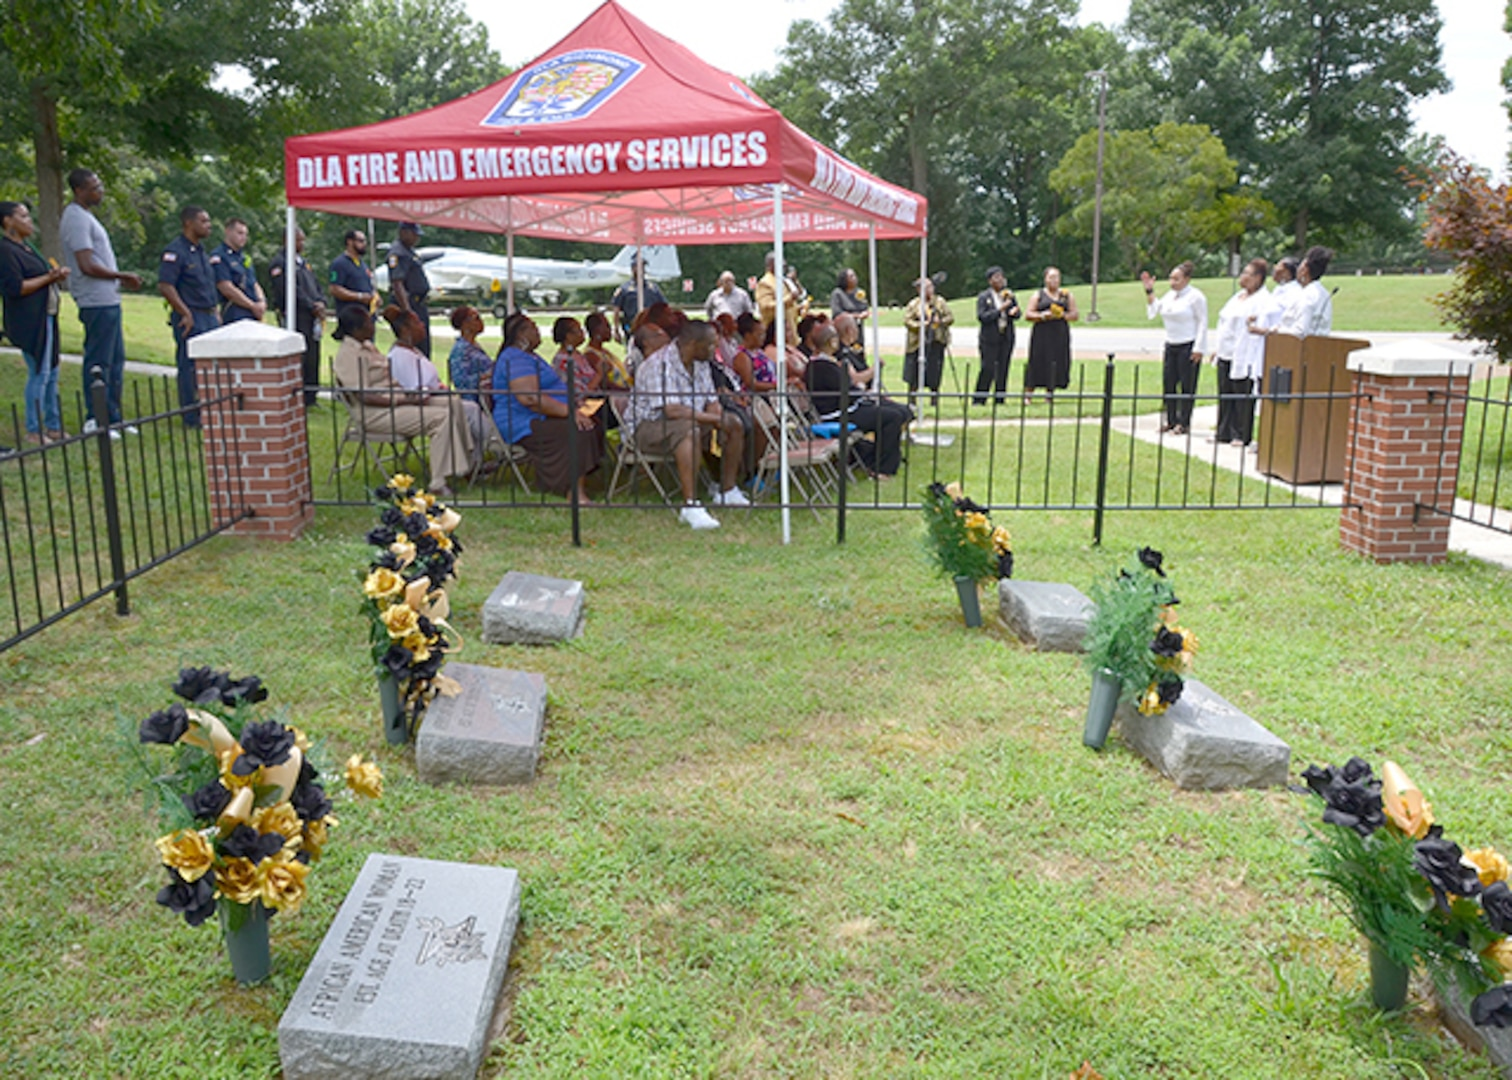 Defense Logistics Agency Aviation's Bellwood Chapter of Blacks in Government conducted a Juneteenth Observance ceremony on June 23, 2017 at the African-American gravesite on Defense Supply Center Richmond, Virginia. The ceremony celebrates African-American Emancipation Day, which is June 19, 1865.